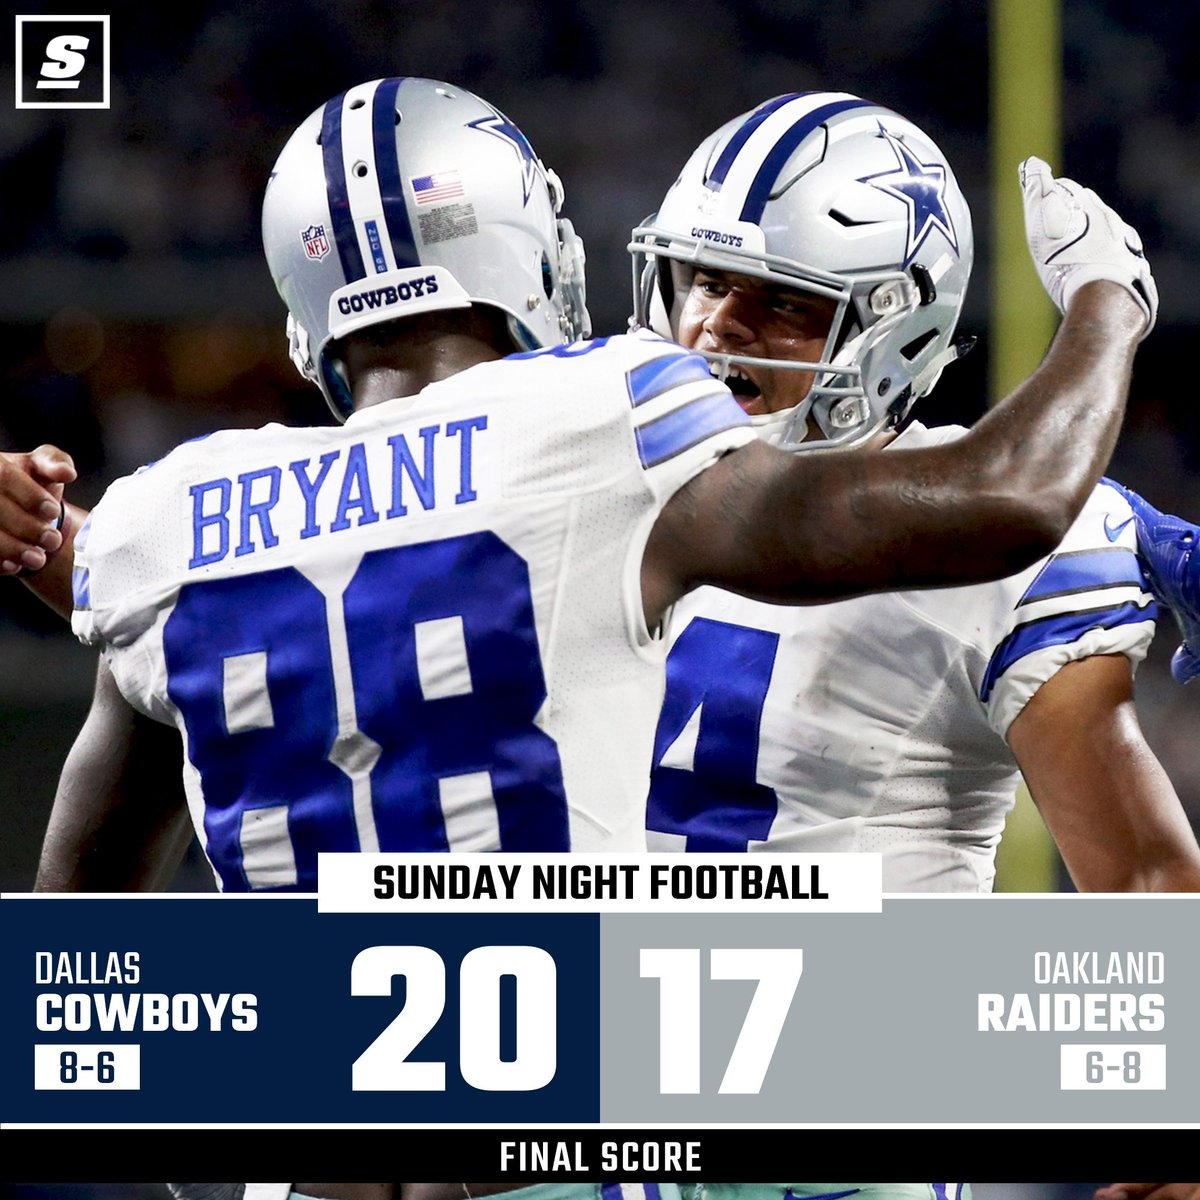 Cowboys pick up the W.